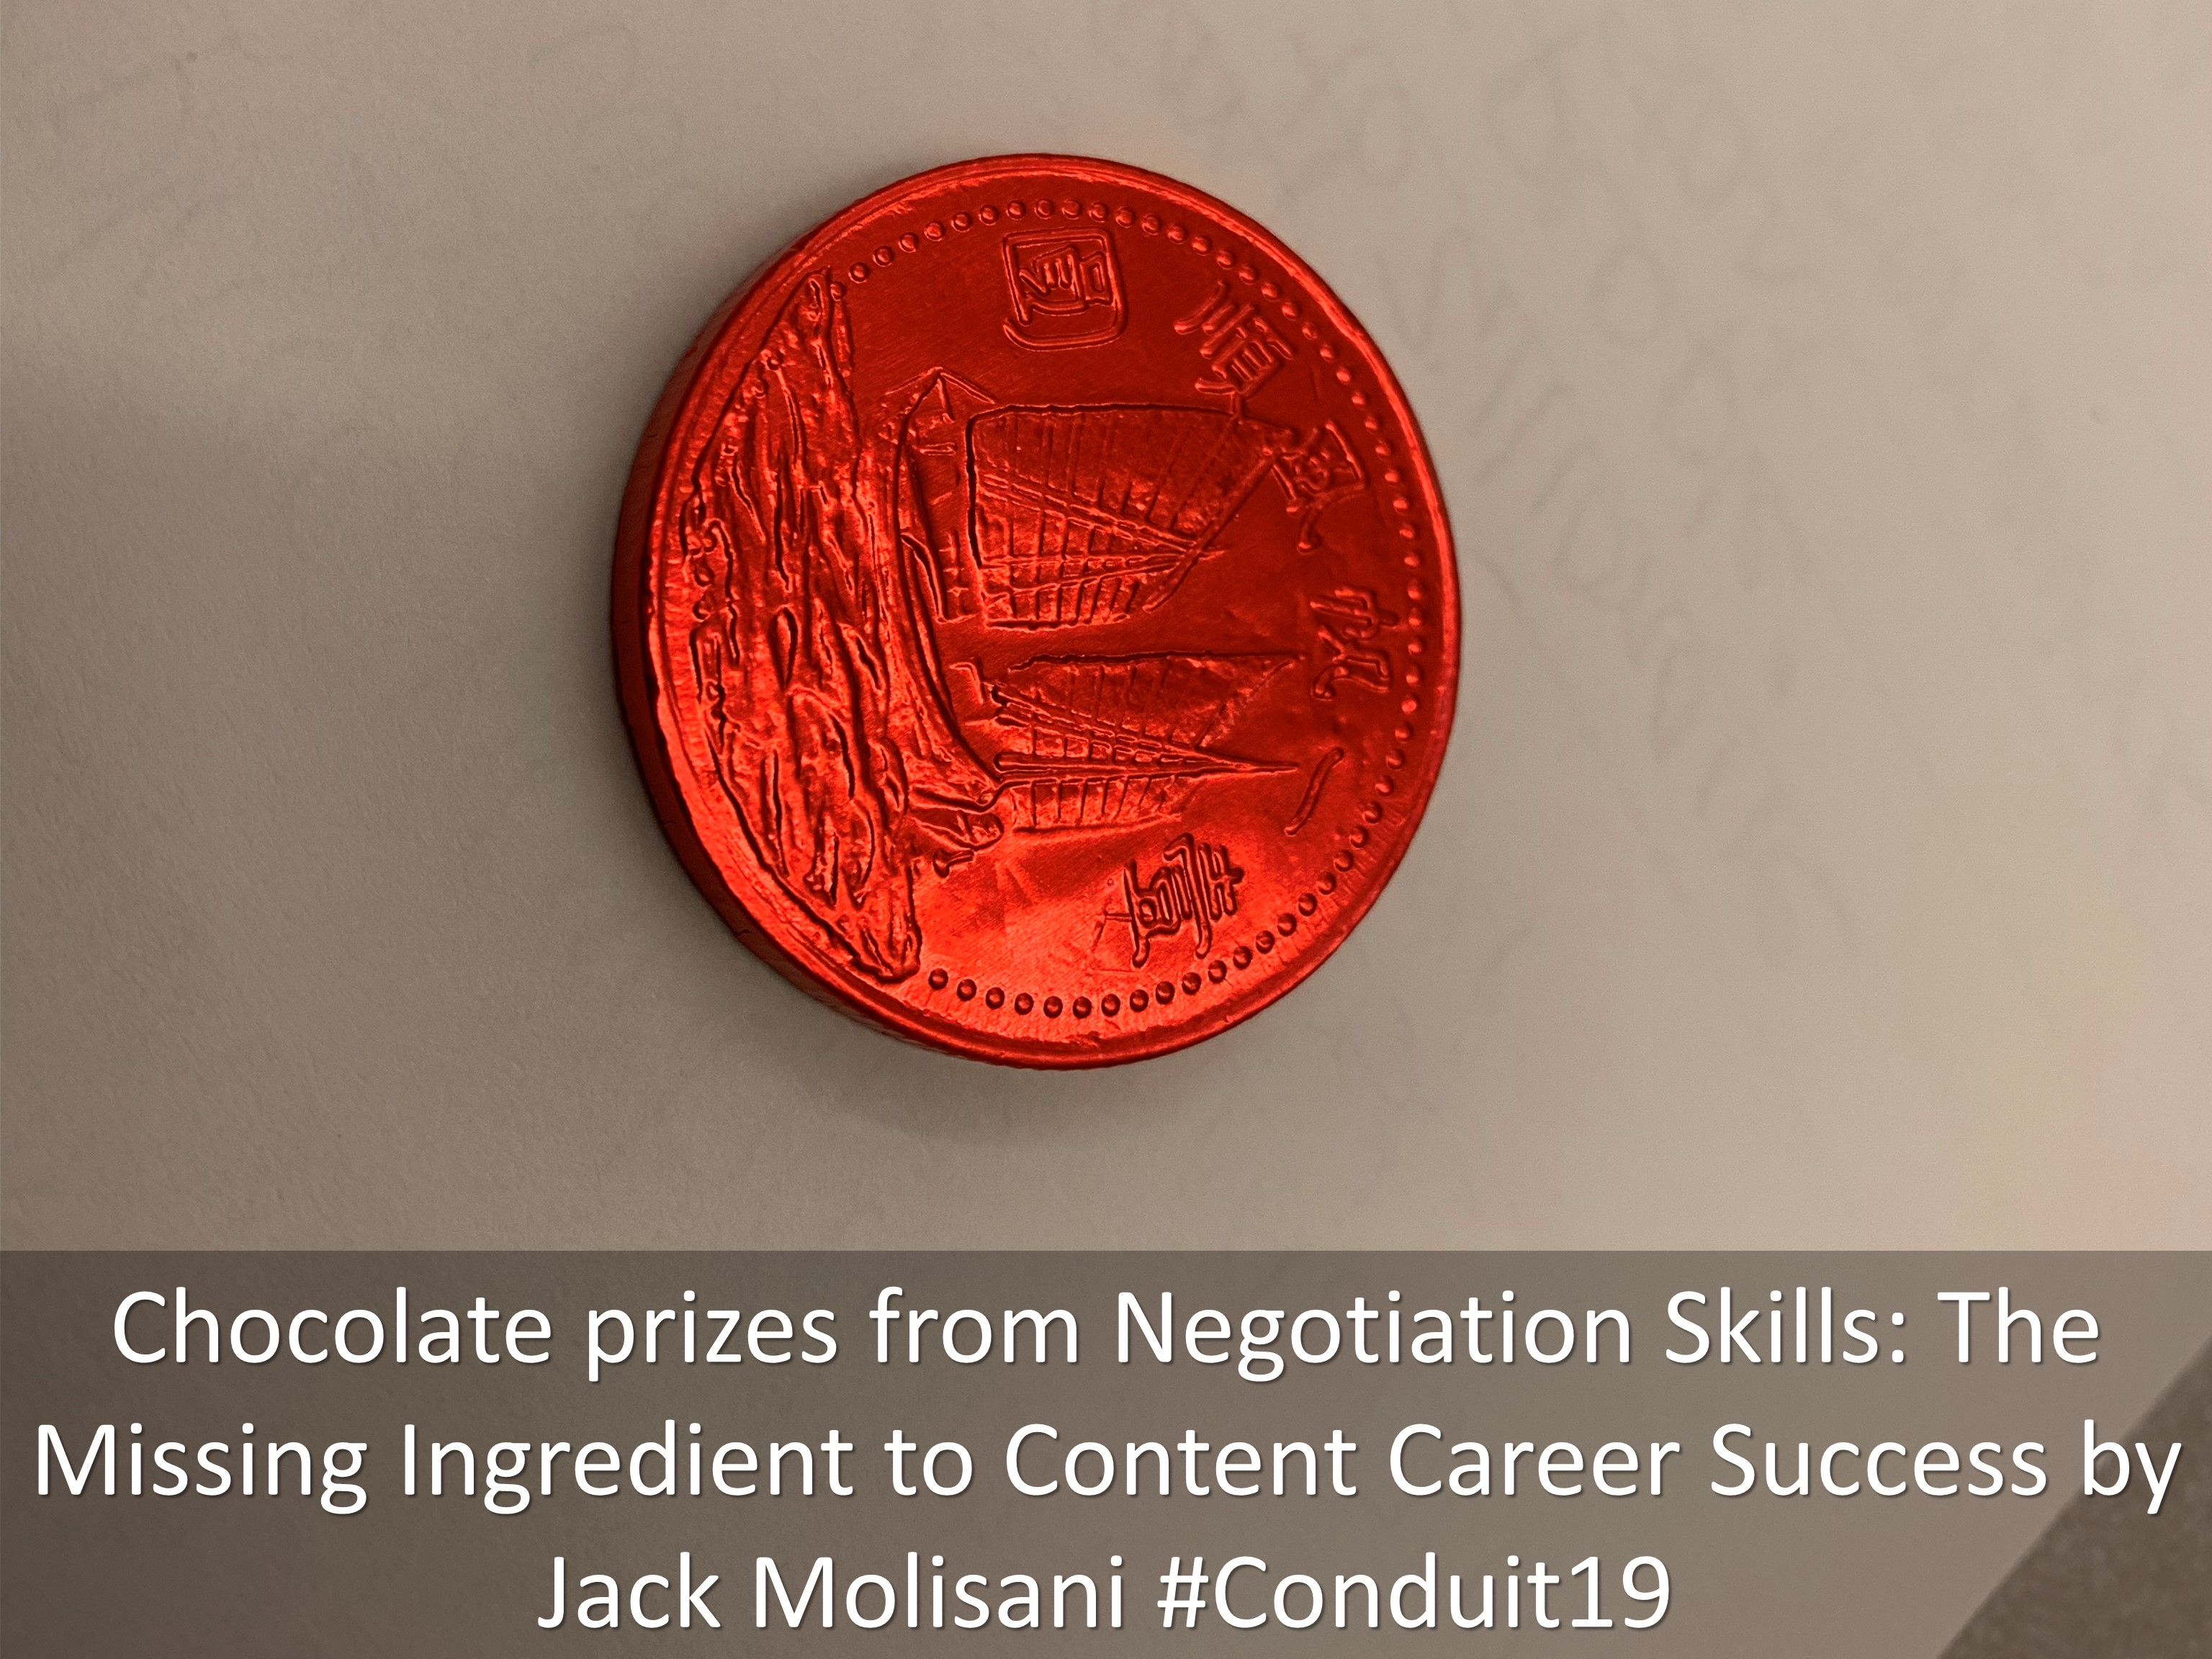 09 Chocolate prizes from Negotiation Skills The Missing Ingredient to Content Career Success by Jack Molisani Conduit19